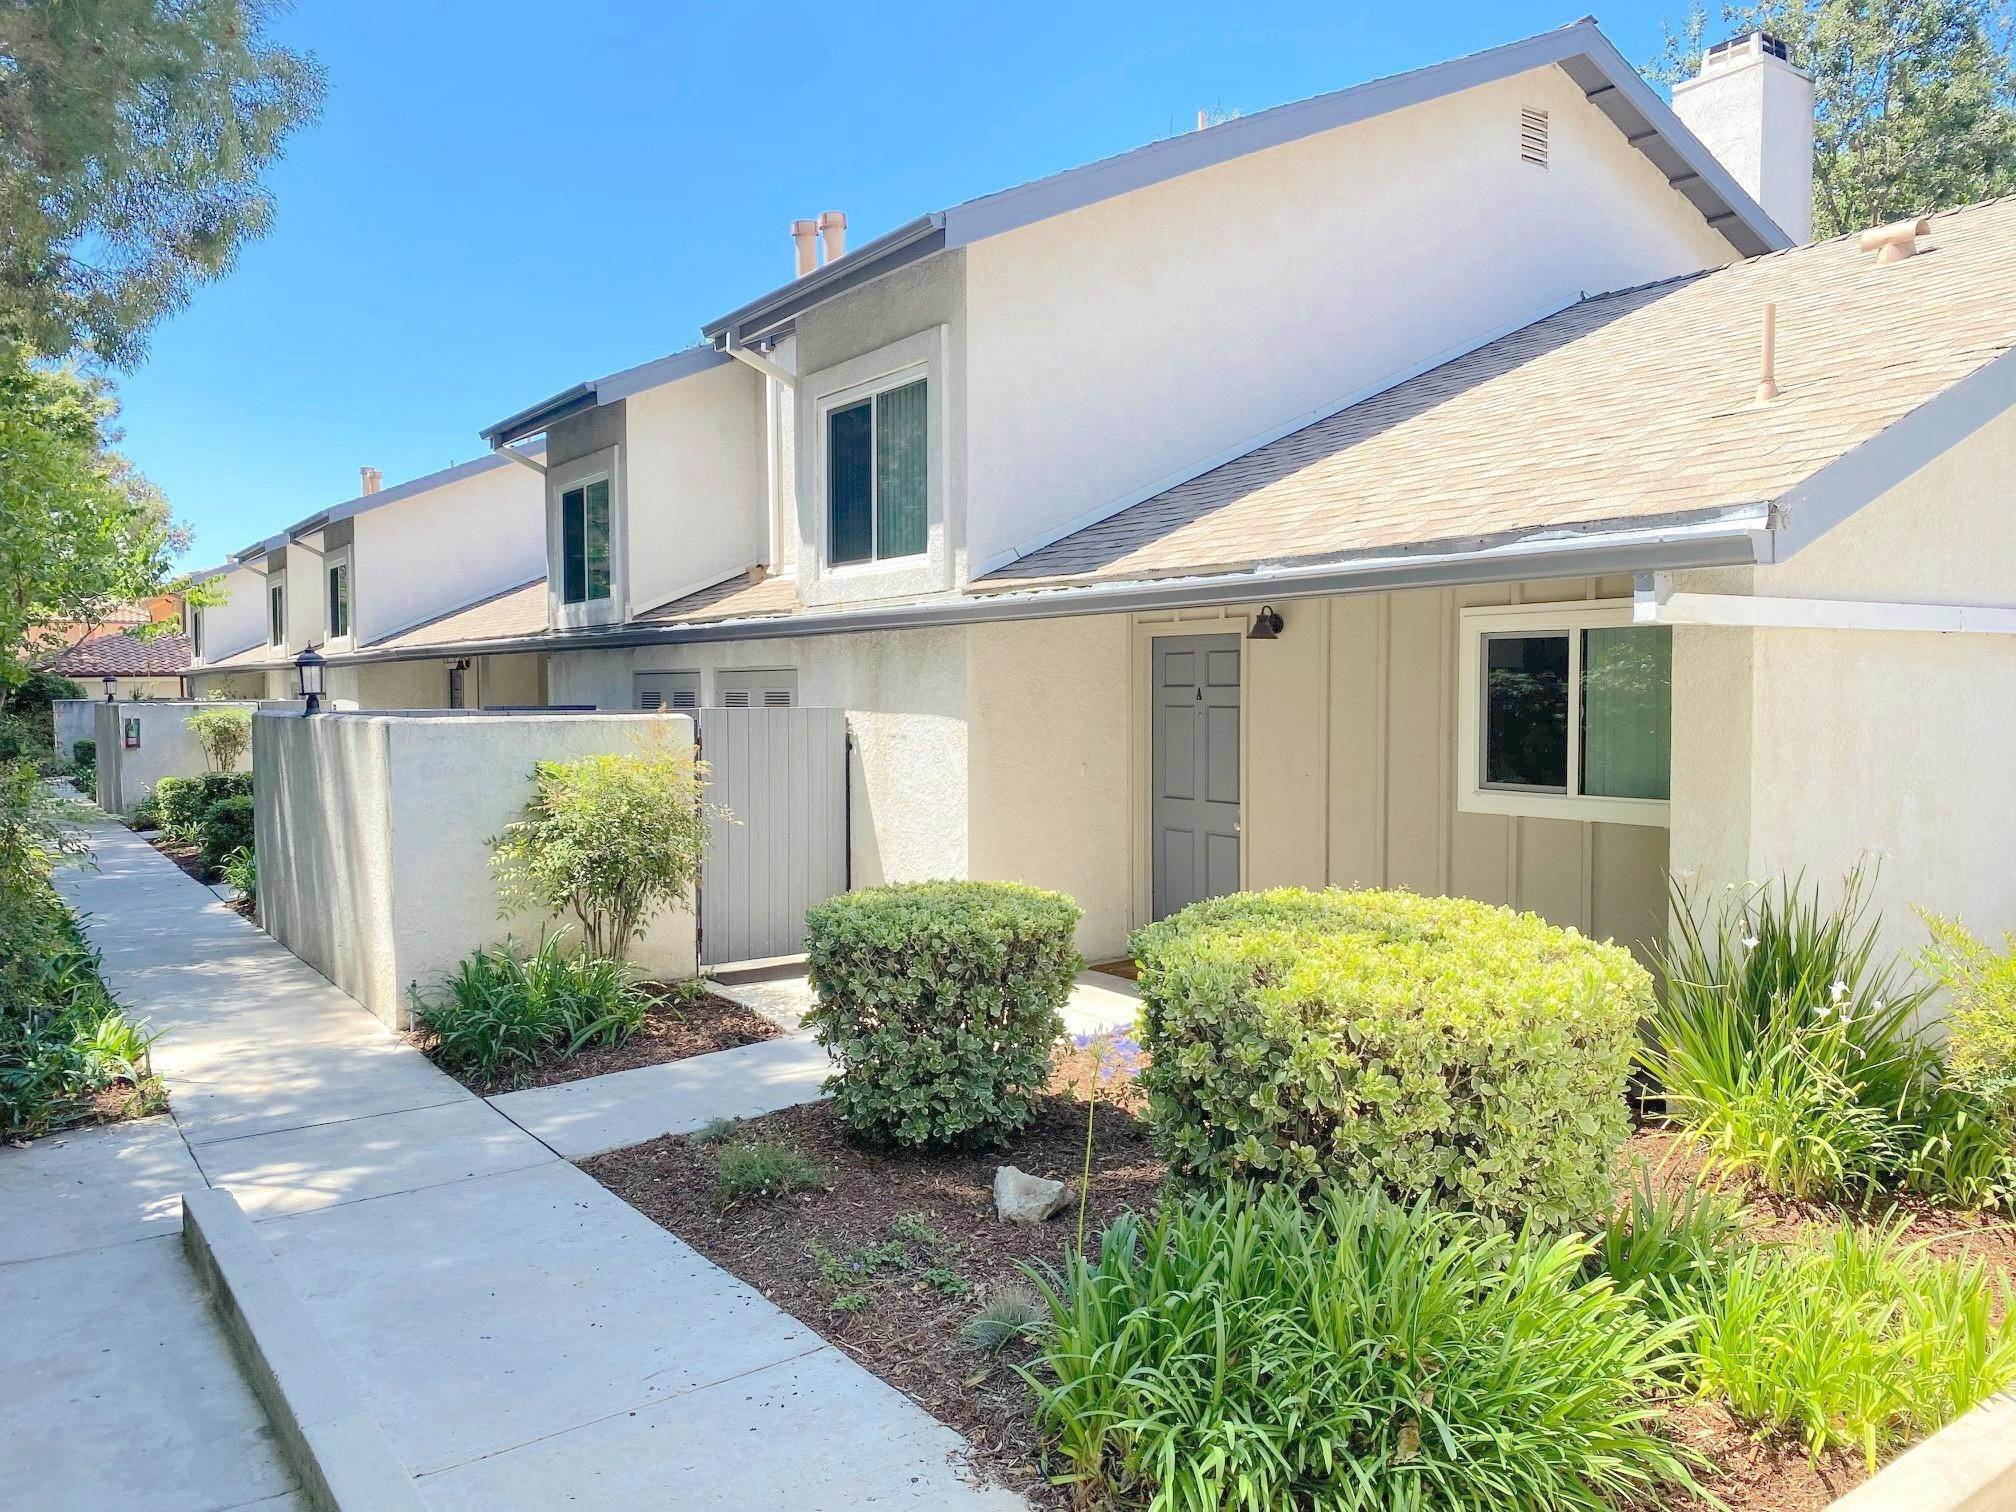 Multi Family for Sale at 3378 Los Robles Road Thousand Oaks, California 91362 United States